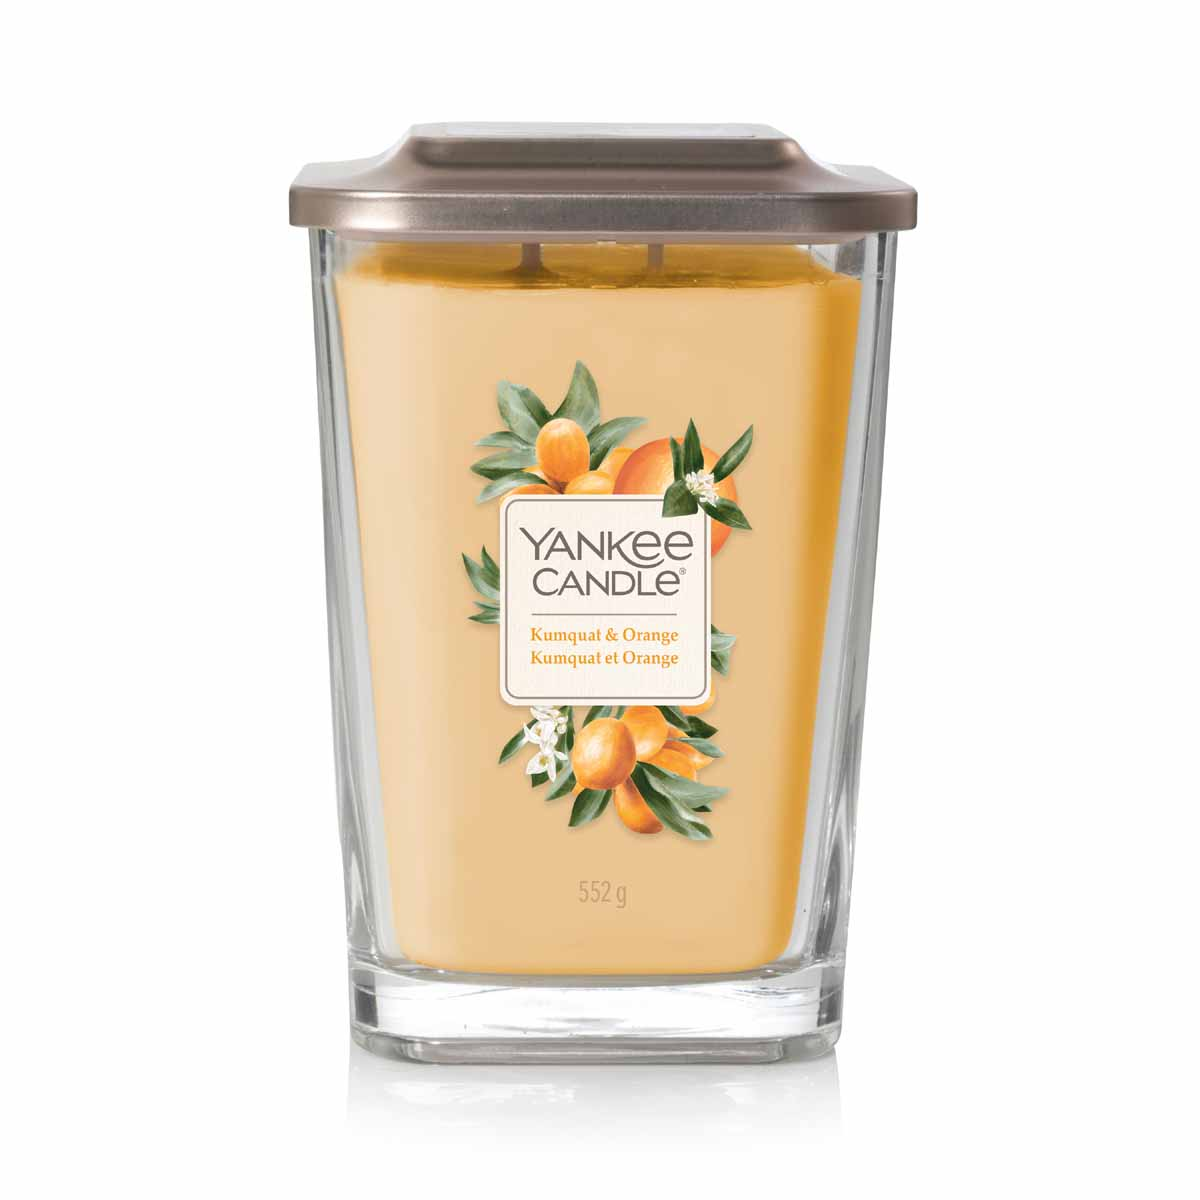 Yankee Candle Kumquat & Orange Square Vessel Grande